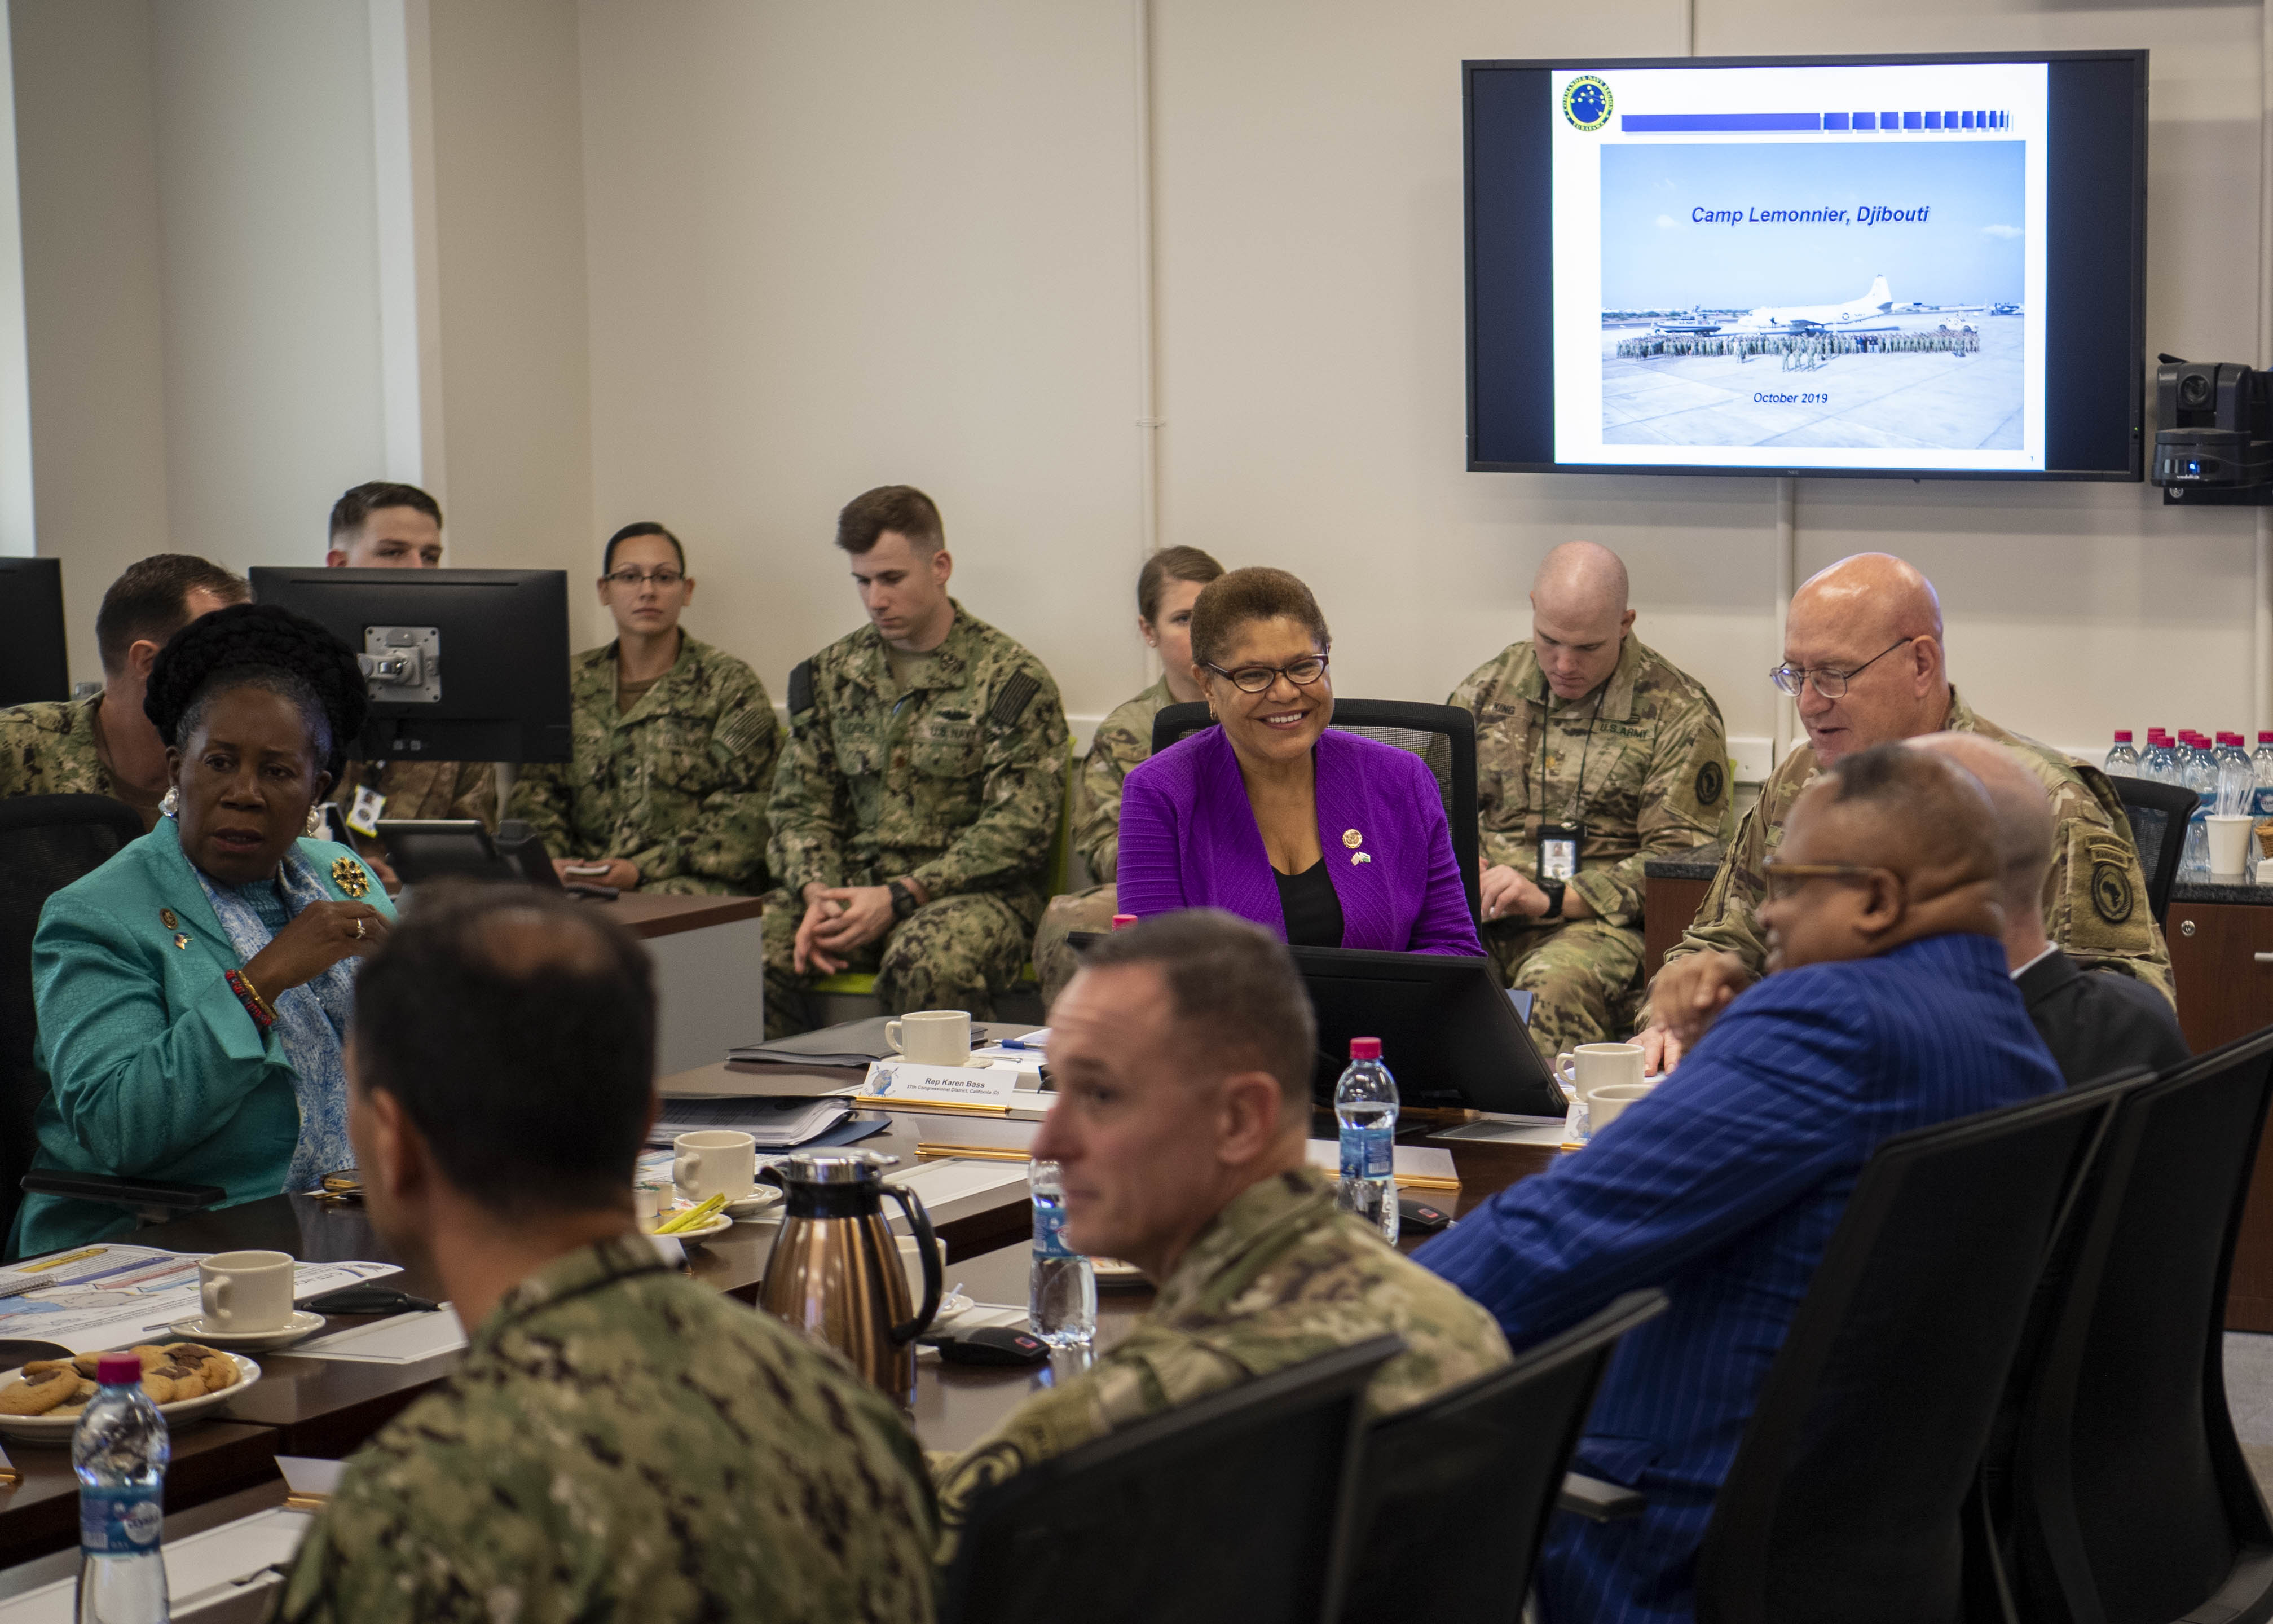 U.S. Army Maj. Gen. Michael Turello, commanding general, Combined Joint Task Force-Horn of Africa (CJTF-HOA), briefs Rep. Karen Bass (D-Calif.) about the CJTF-HOA mission at Camp Lemonnier, Djibouti, Oct. 1, 2019. Bass visited Djibouti to promote U.S. Government and host nation partnerships in the region. (U.S. Air Force photo by Staff Sgt. J.D. Strong II)